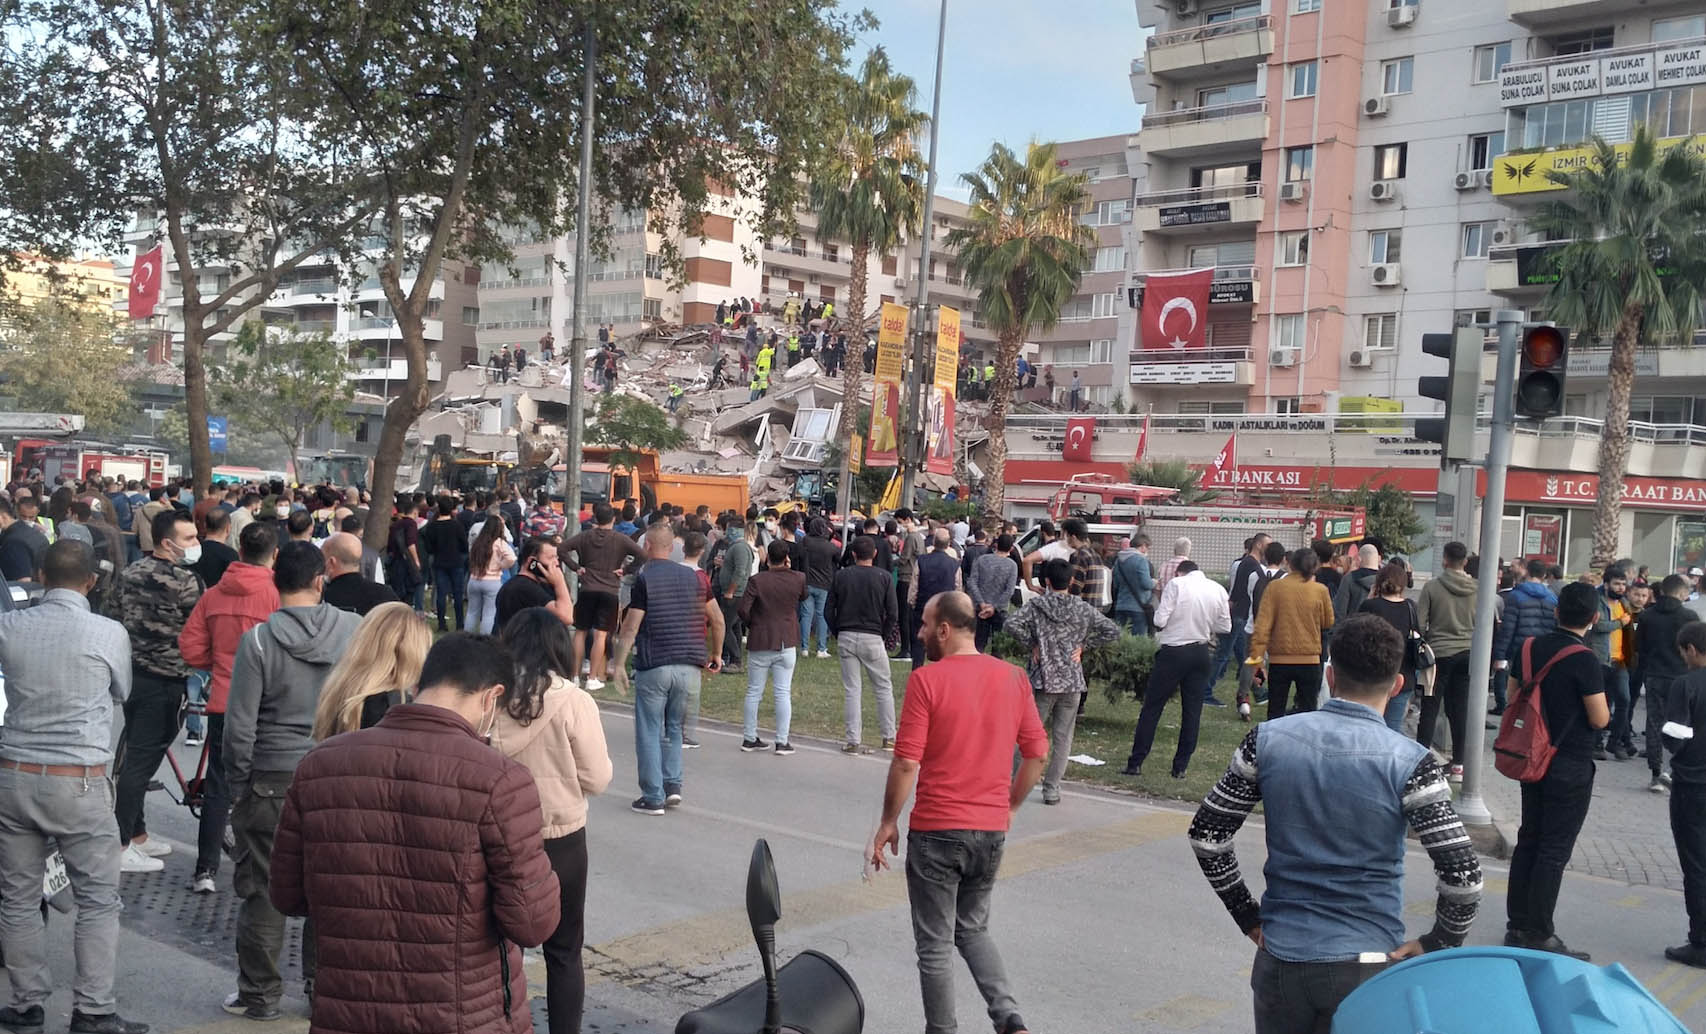 Crowds gather around an earthquake-ravaged building in Izmir. Photograph by ApChrKey.